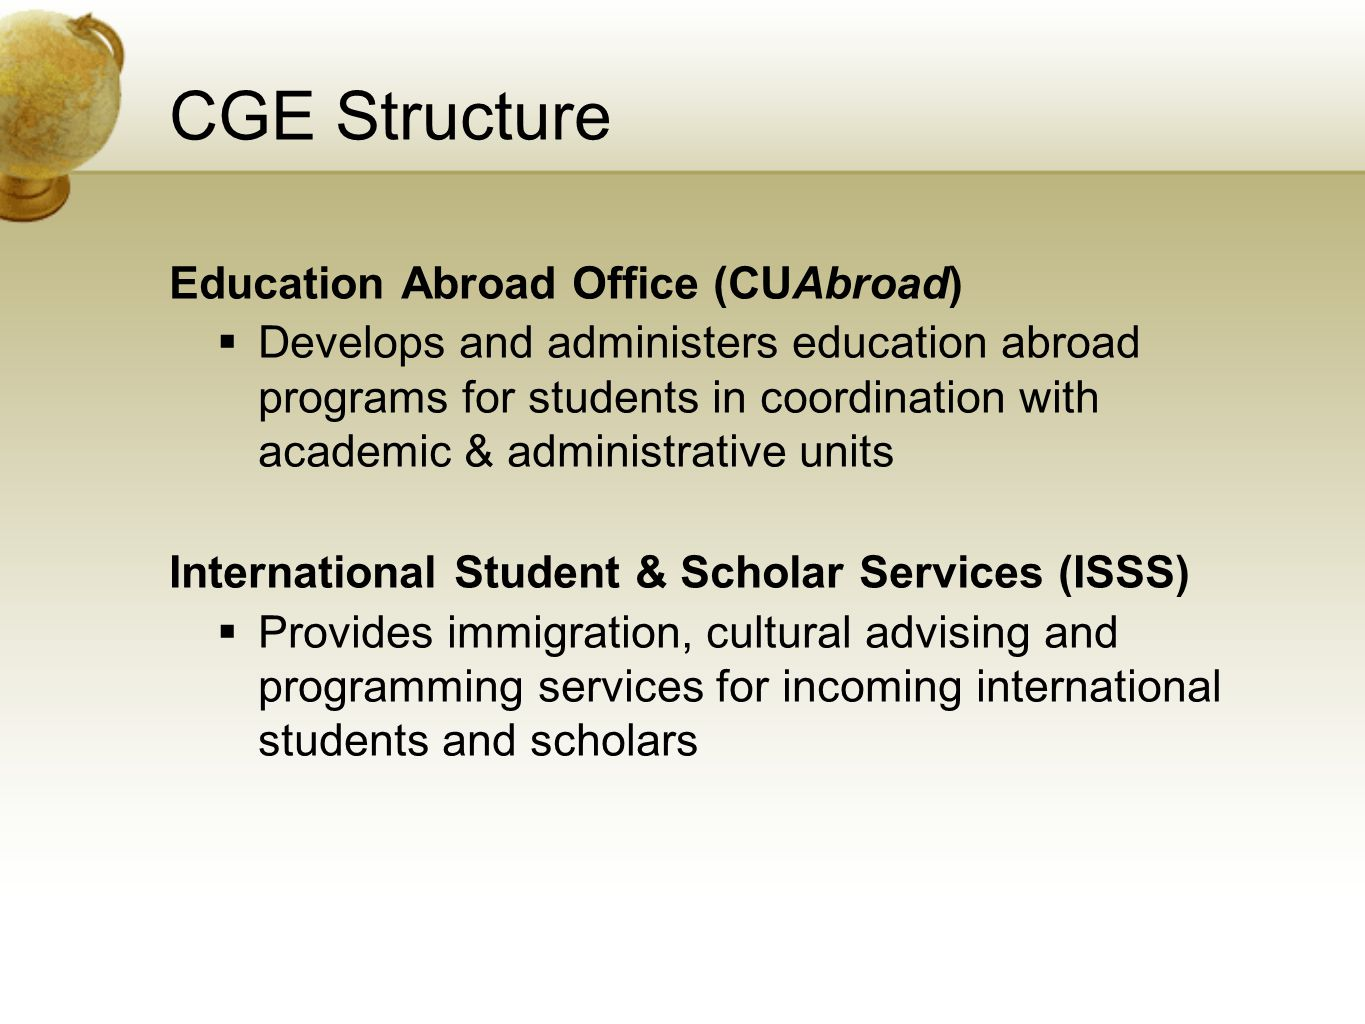 CGE Structure Education Abroad Office (CUAbroad) Develops and administers education abroad programs for students in coordination with academic & administrative units International Student & Scholar Services (ISSS) Provides immigration, cultural advising and programming services for incoming international students and scholars